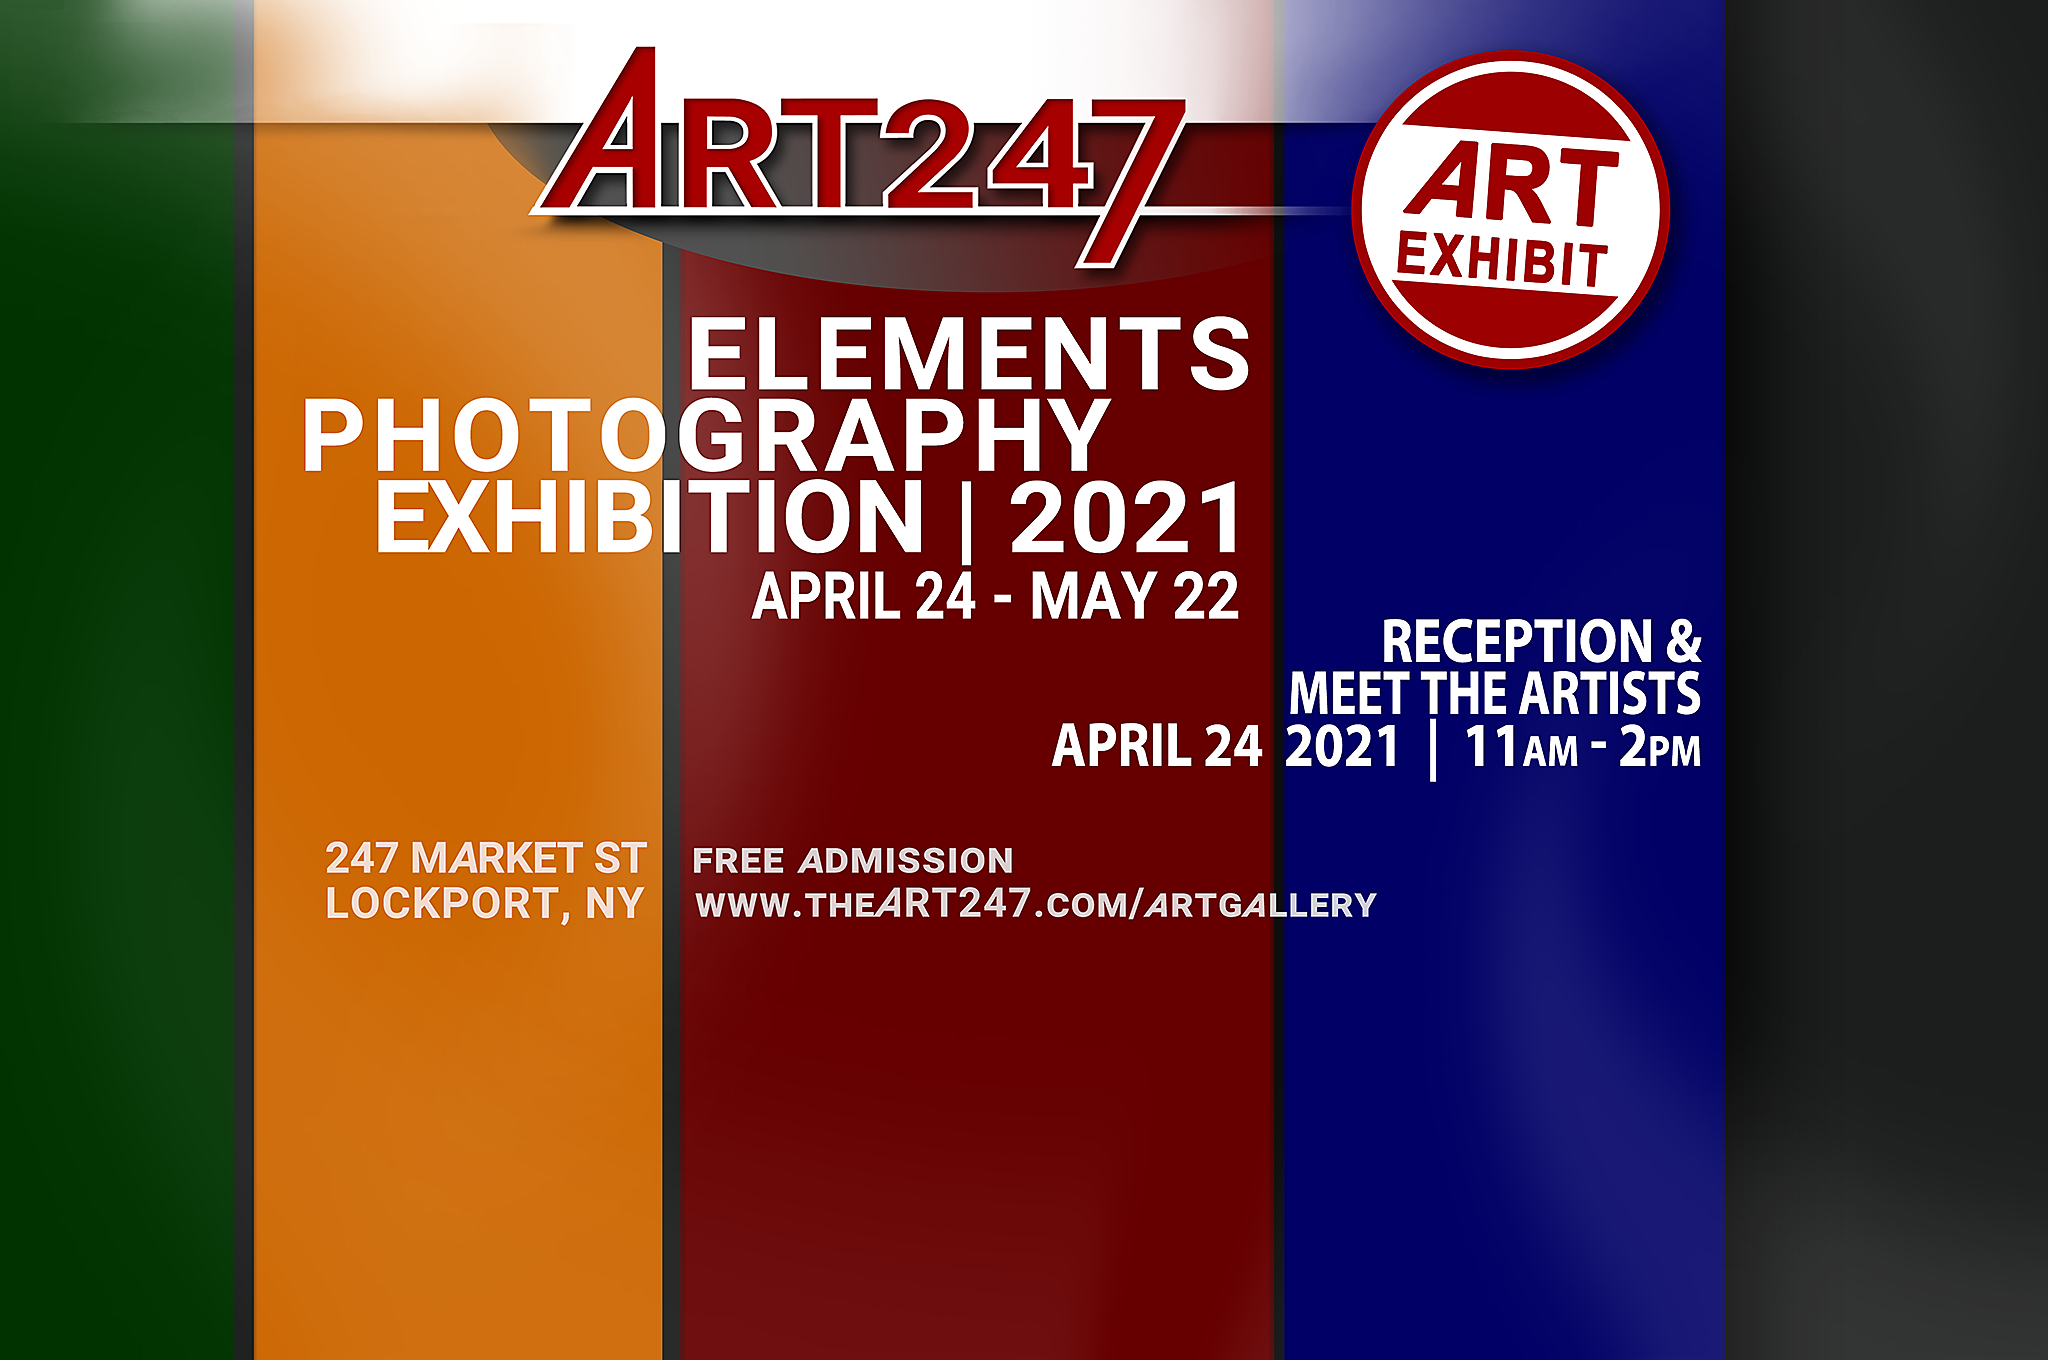 ELEMENTS PHOTOGRAPHY | Exhibition 2021